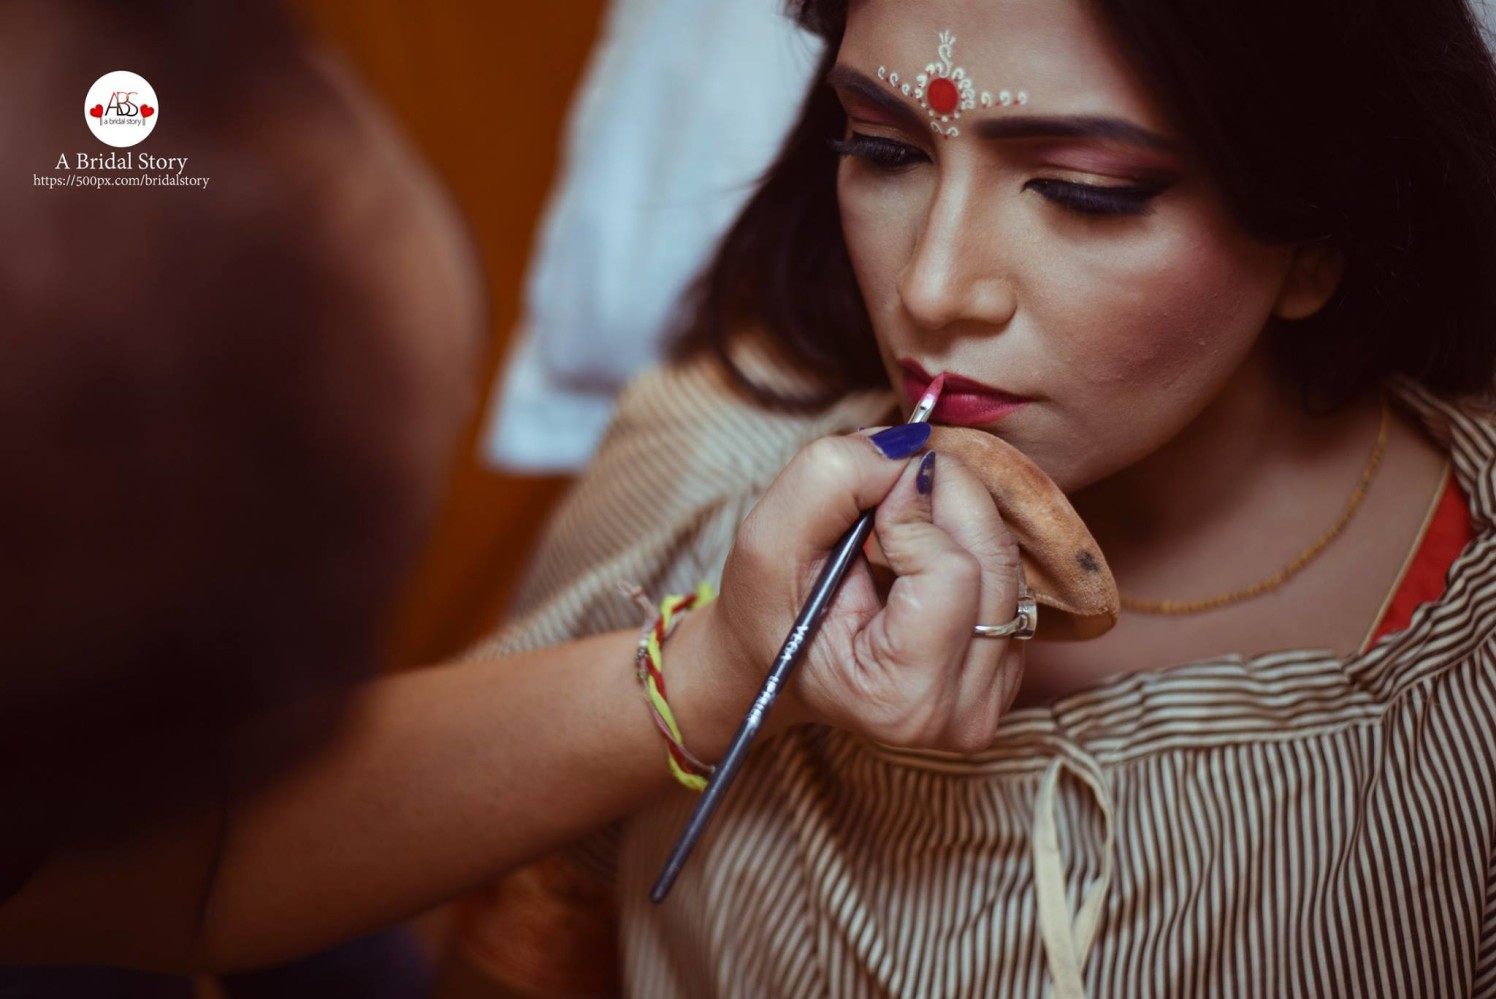 Priming her up! by A Bridal Story Wedding-photography | Weddings Photos & Ideas